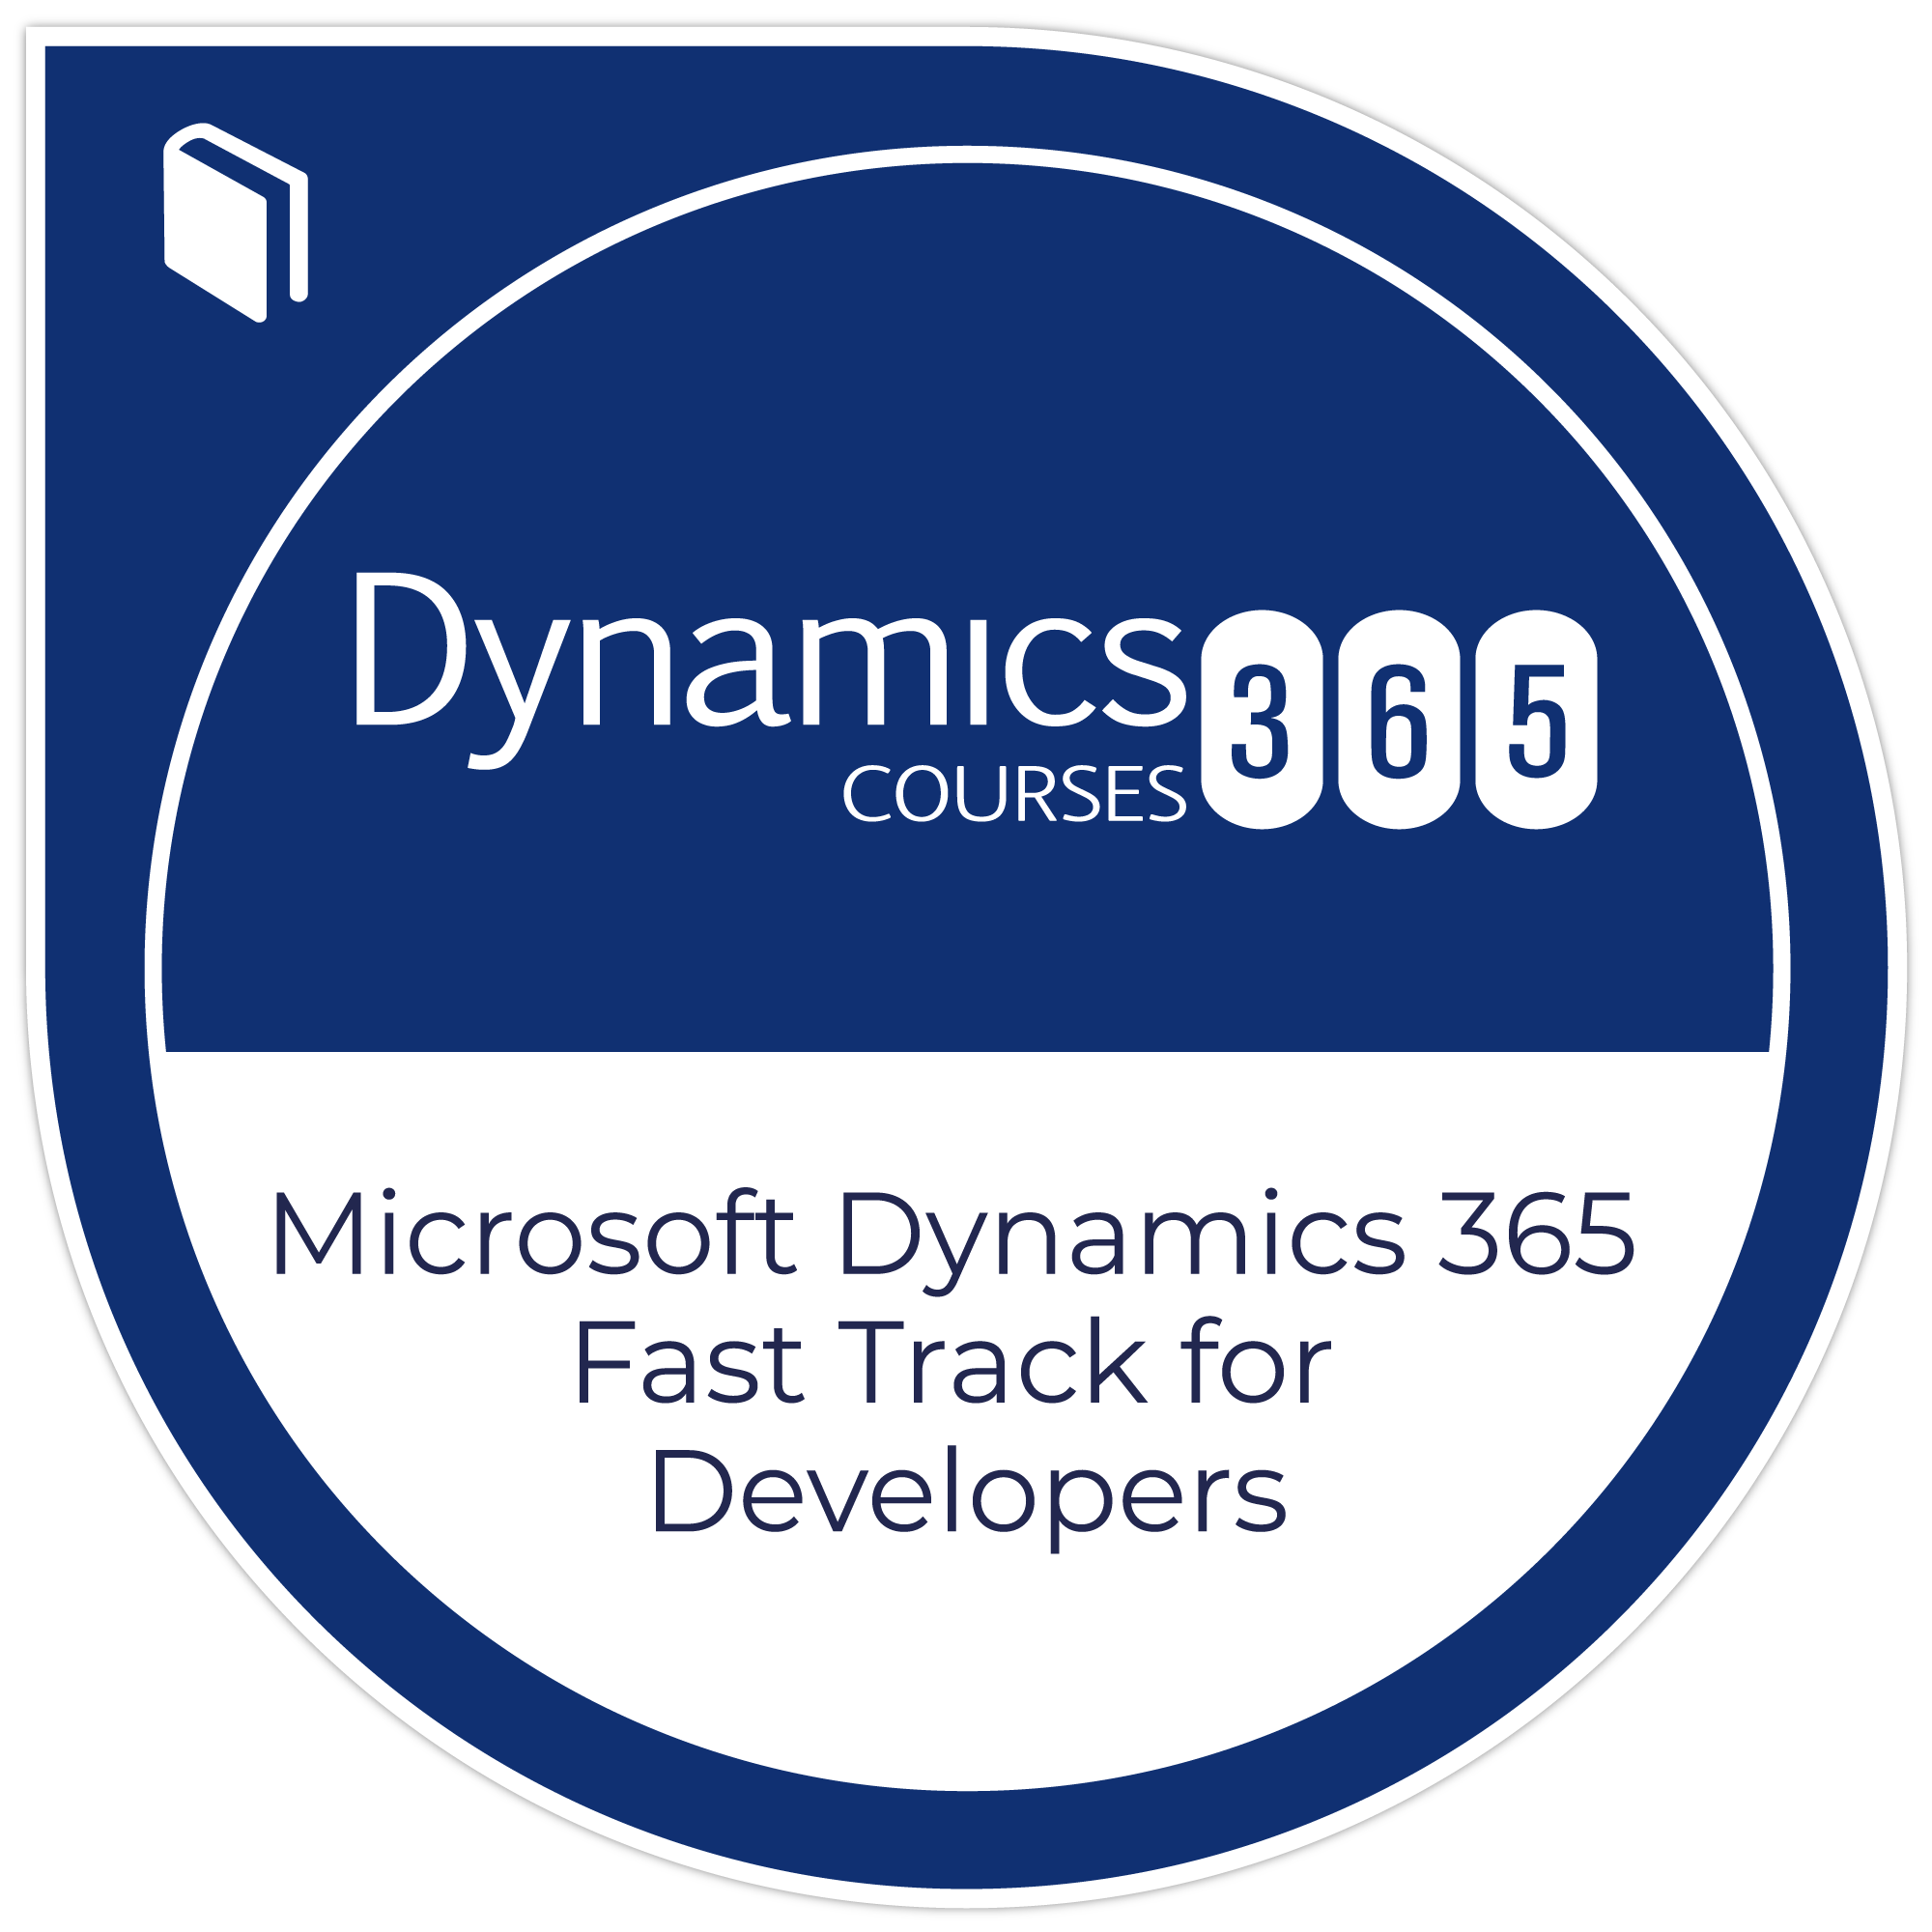 Microsoft Dynamics 365 Fast Track for Developers